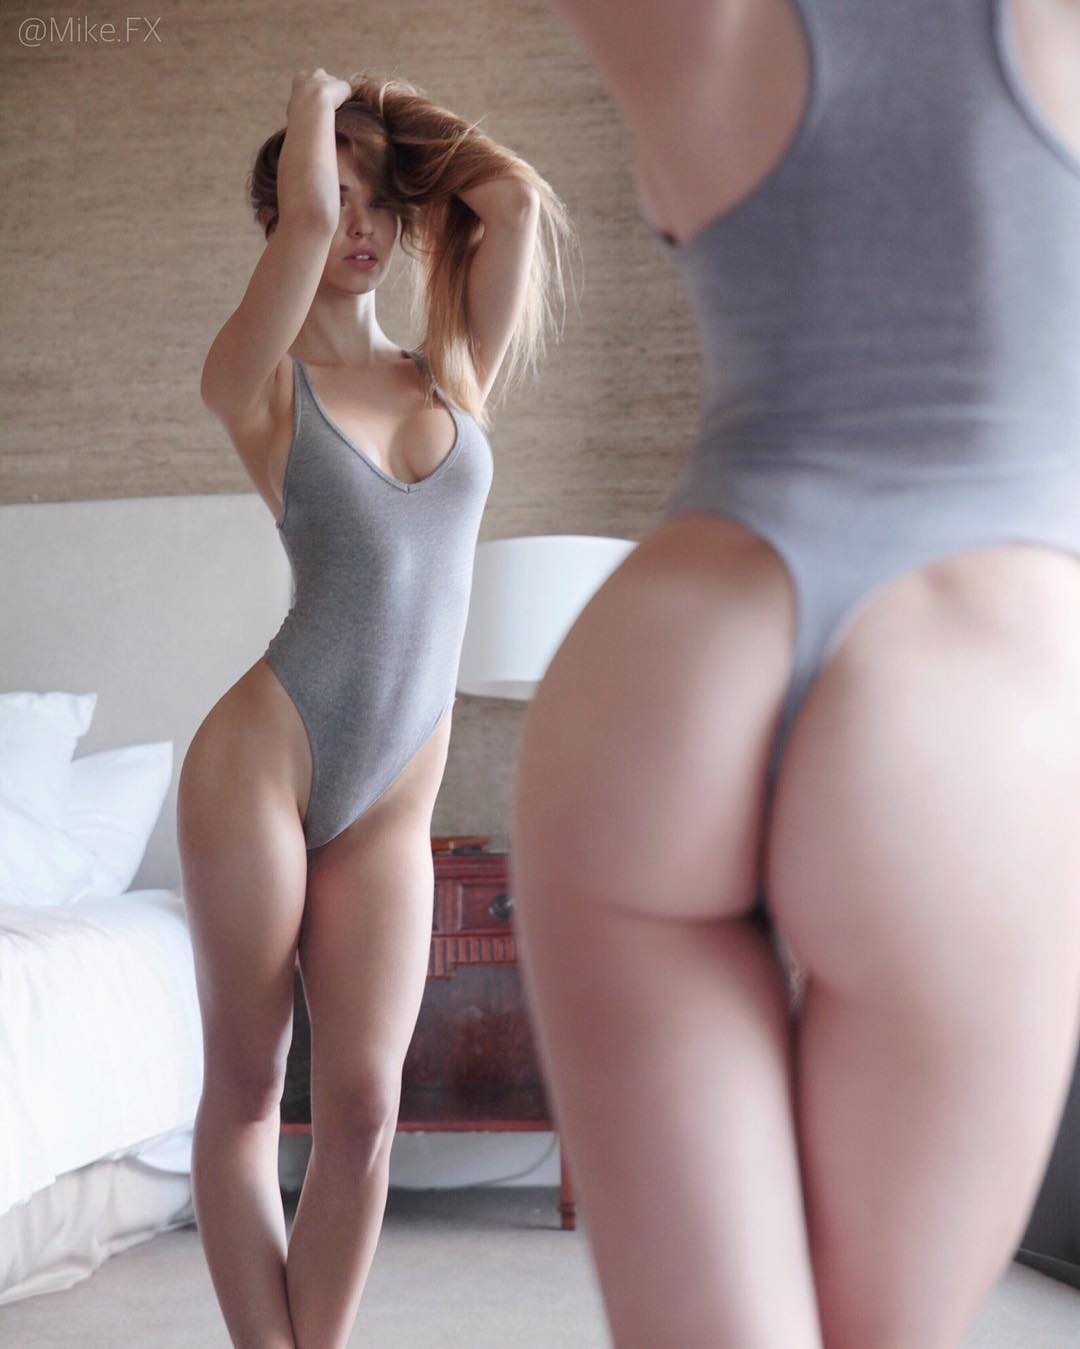 cfnm sex videos free sex videos and porn movies on daily Elisavetaphoto Gorgeous Erotic Clothed Nonnude Nicelegs Backside Panties Ass Greatass Slim Slender Fit Shoes Photography Uk